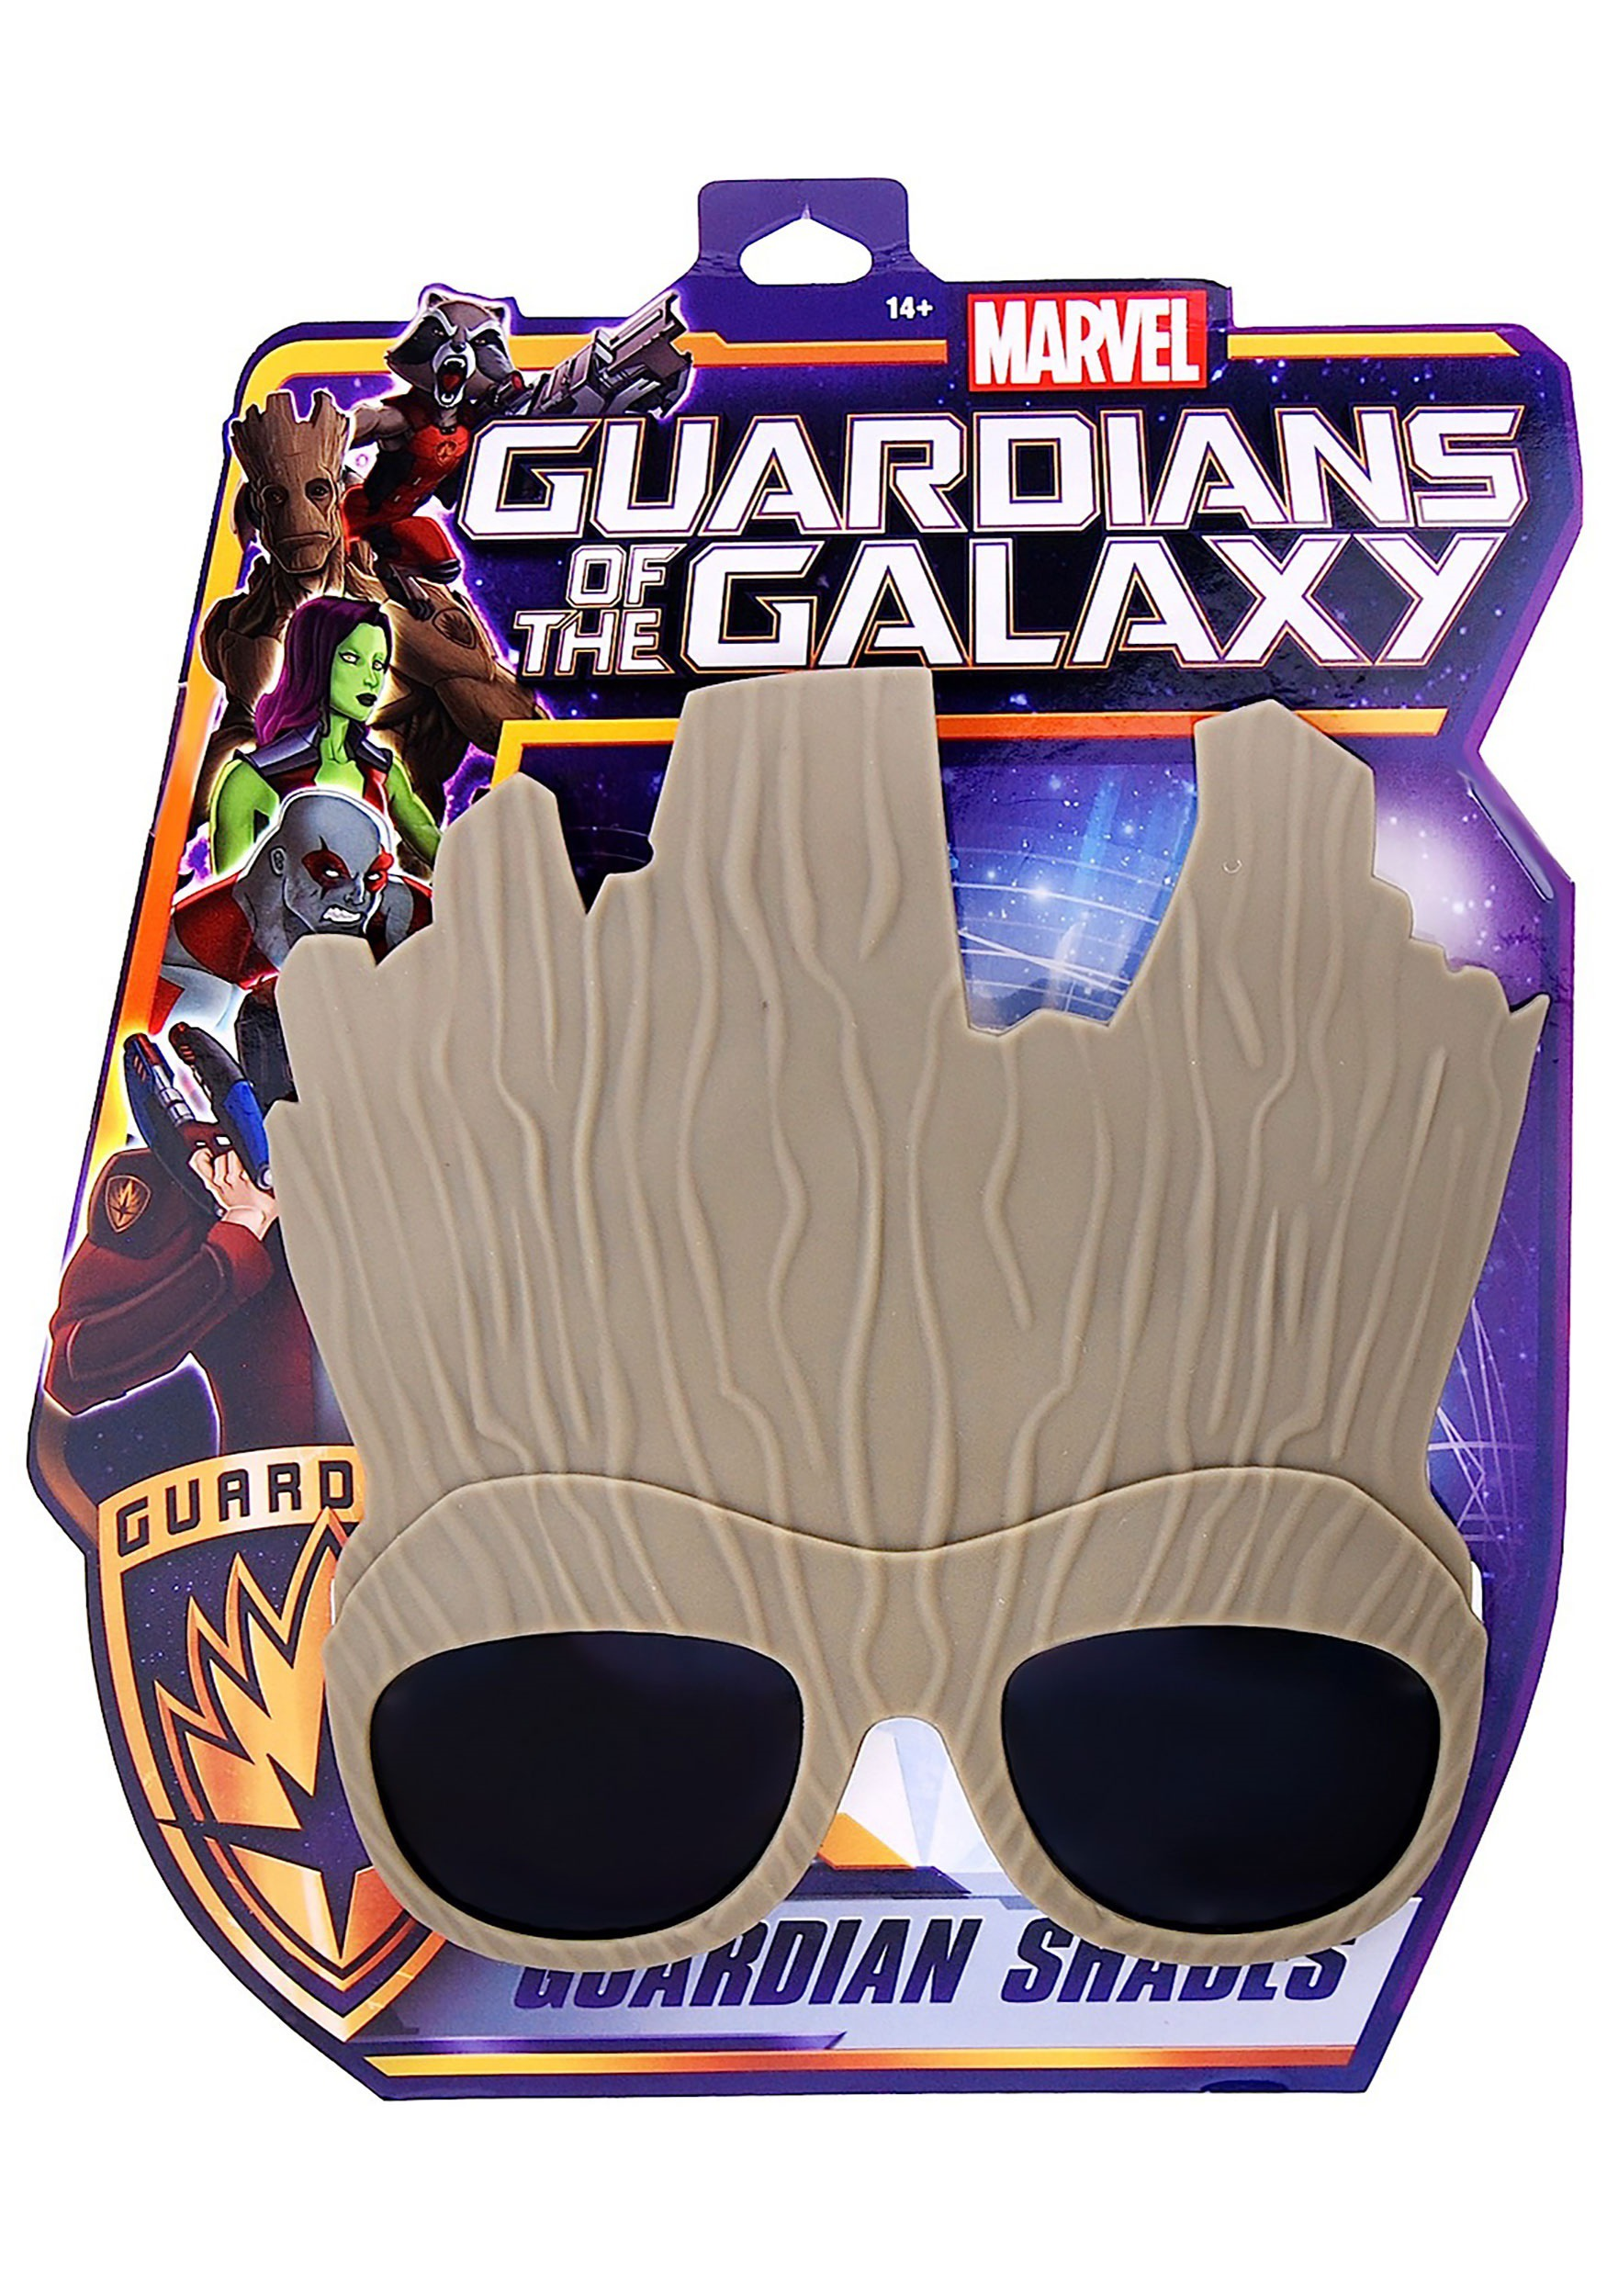 Guardians of the Galaxy Groot Sunglasses HWSG2411